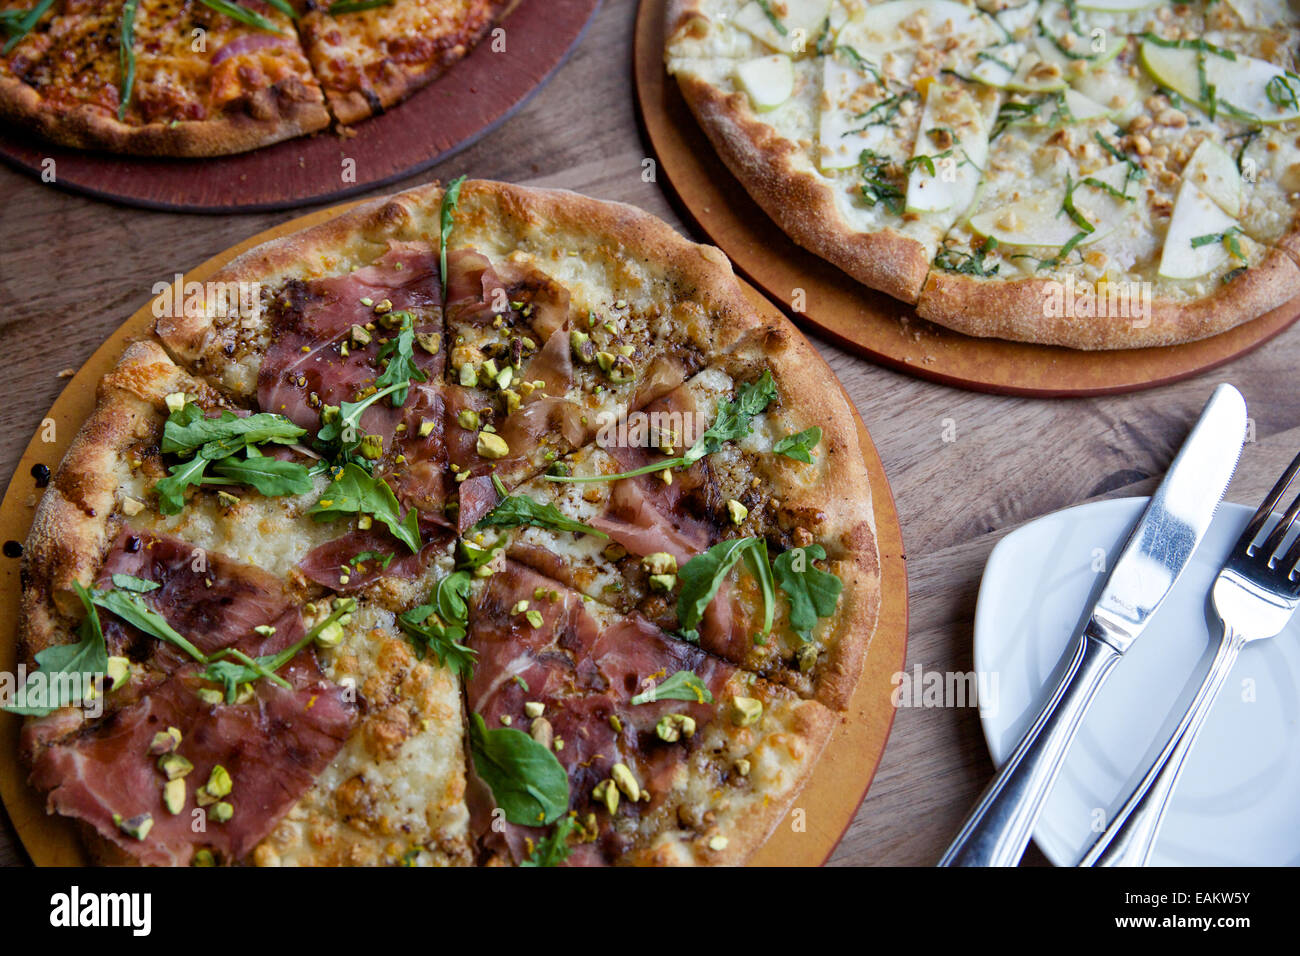 Gourmet pizza in Missoula, Montana. (Photo by Bess Brownlee) - Stock Image